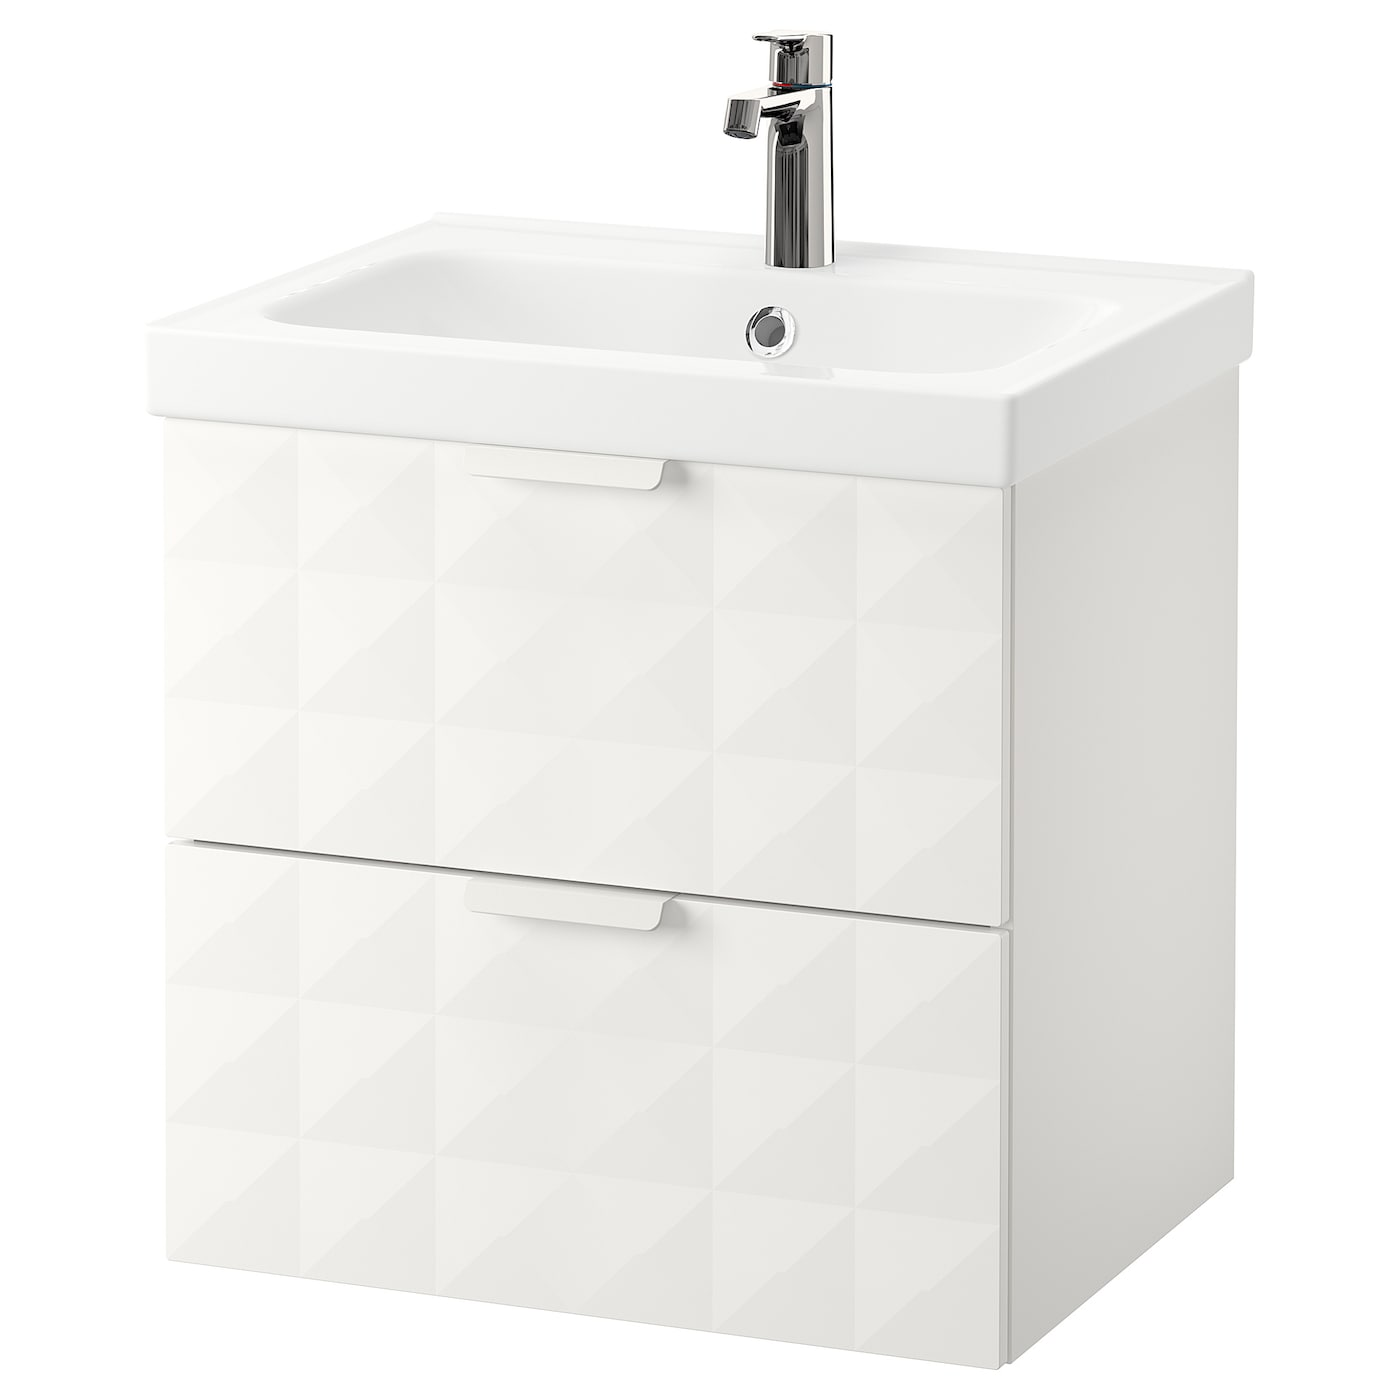 sinks bathroom all wanted one vanities and shipping on vanity free tops sale with single sink